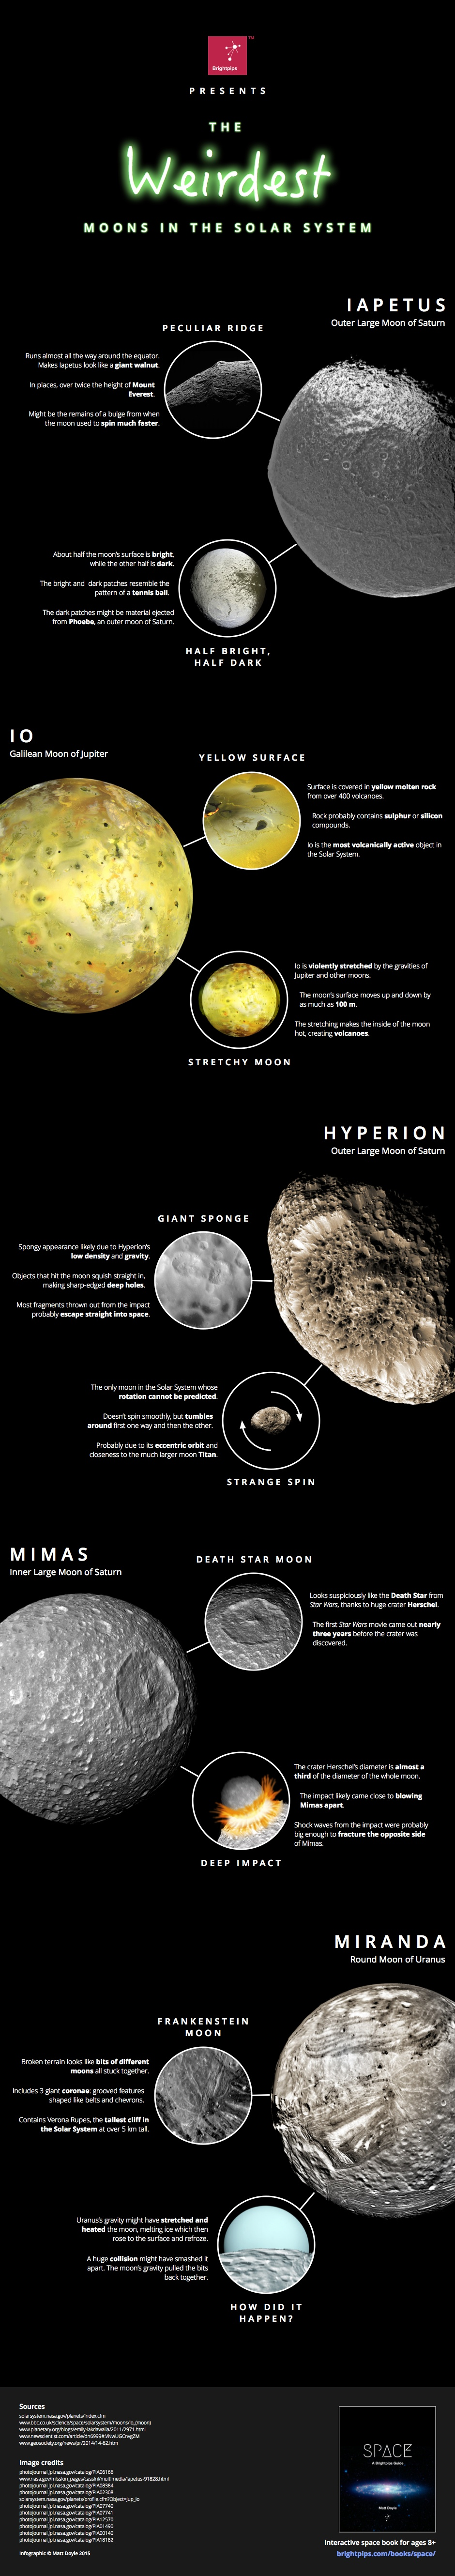 The Weirdest Moons in the Solar System: Iapetus, Io, Hyperion, Mimas, Miranda